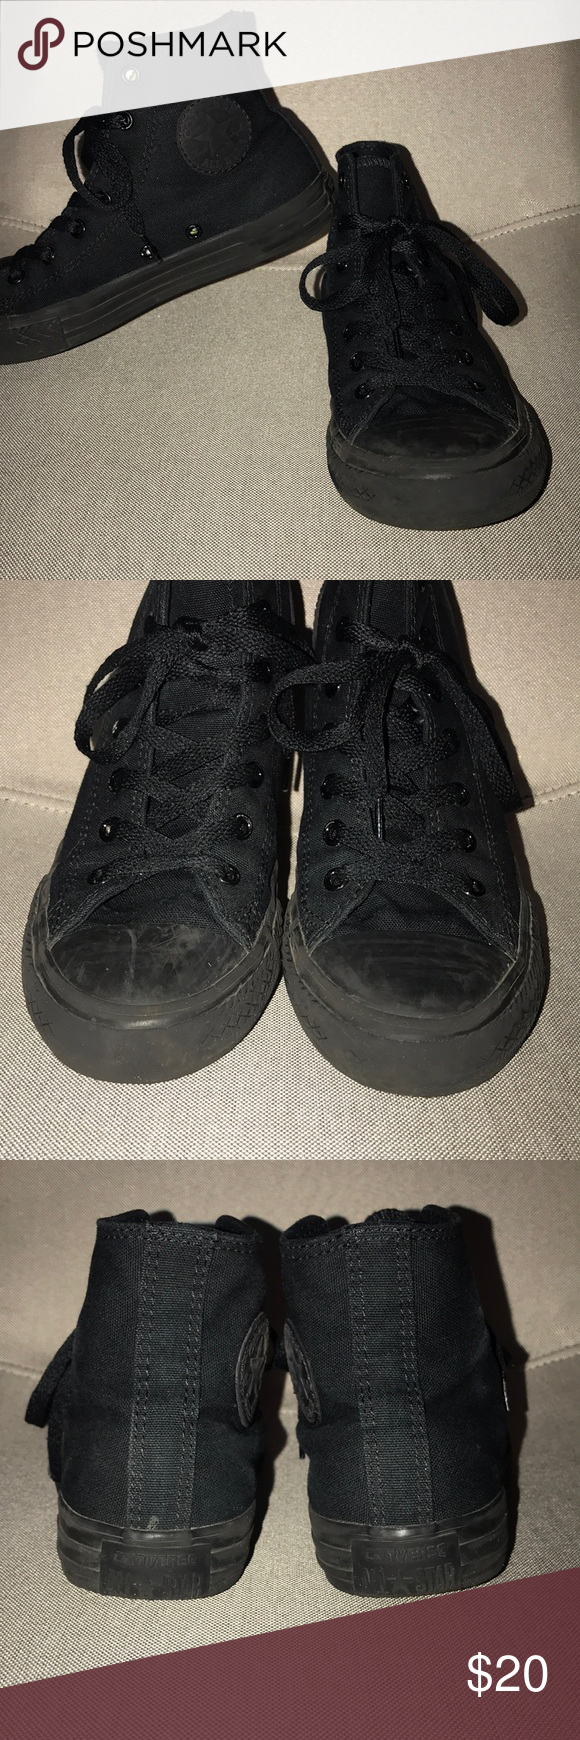 7b1eec987e09 Converse high tops Kids Converse high tops in excellent condition! Cute for  a boy or girl